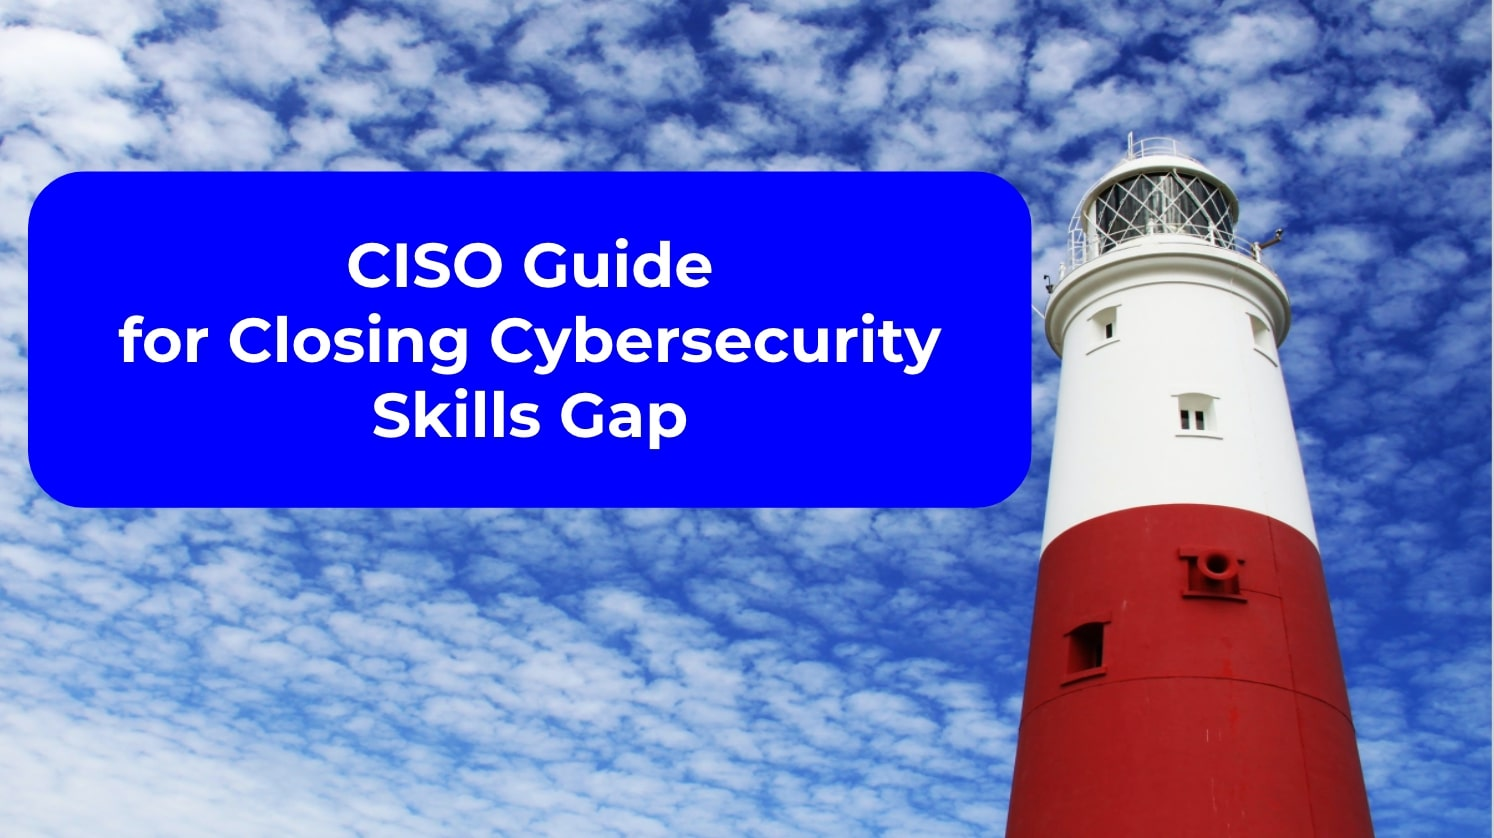 CISO Guide for Closing Cybersecurity Skills Gap